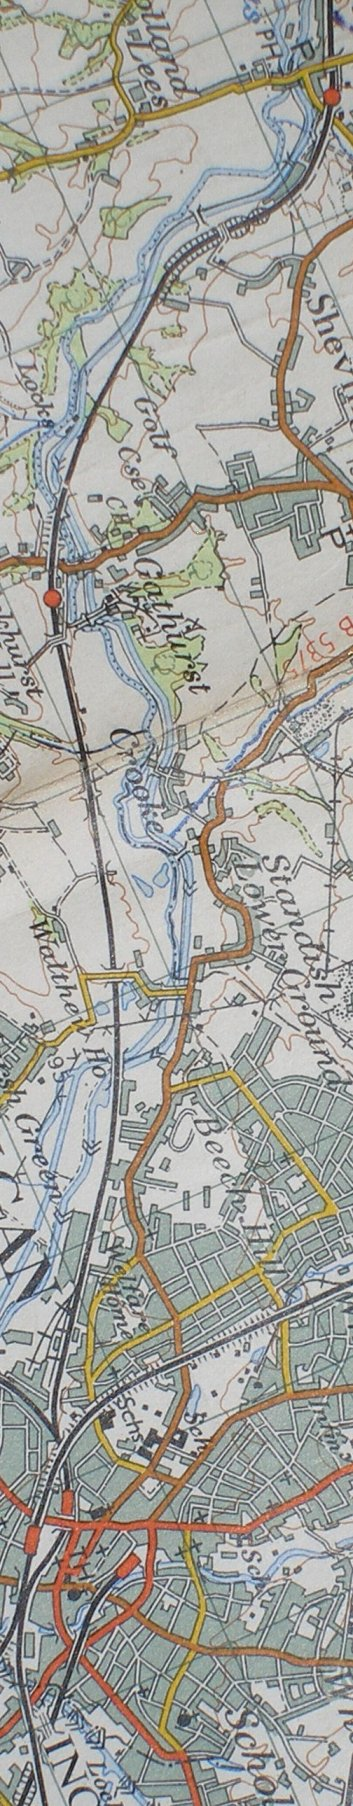 Section from the Ordnance Survey map 1961 showing L&YR railway line from Gathurst to Wigan Wallgate railway station